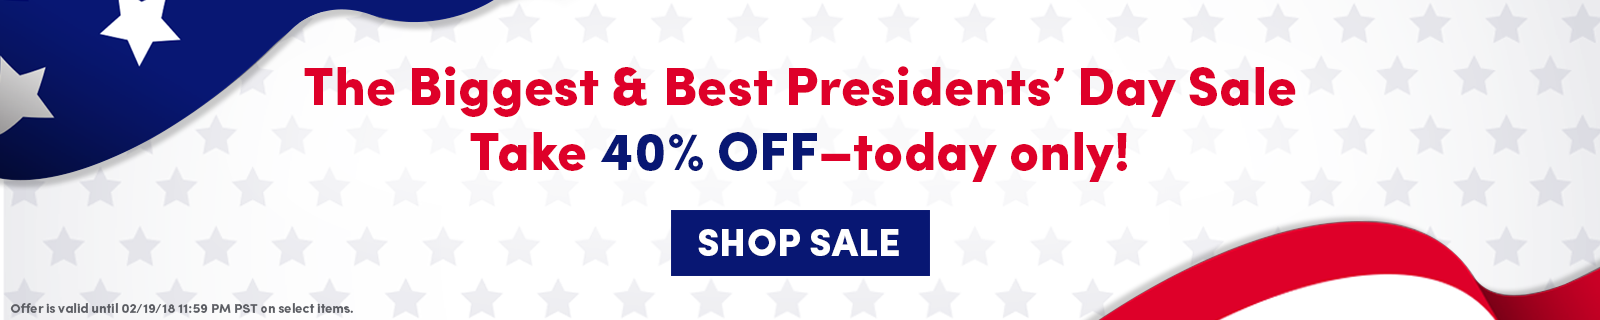 40% off Presidents' Day Sale Today Only Shop Now